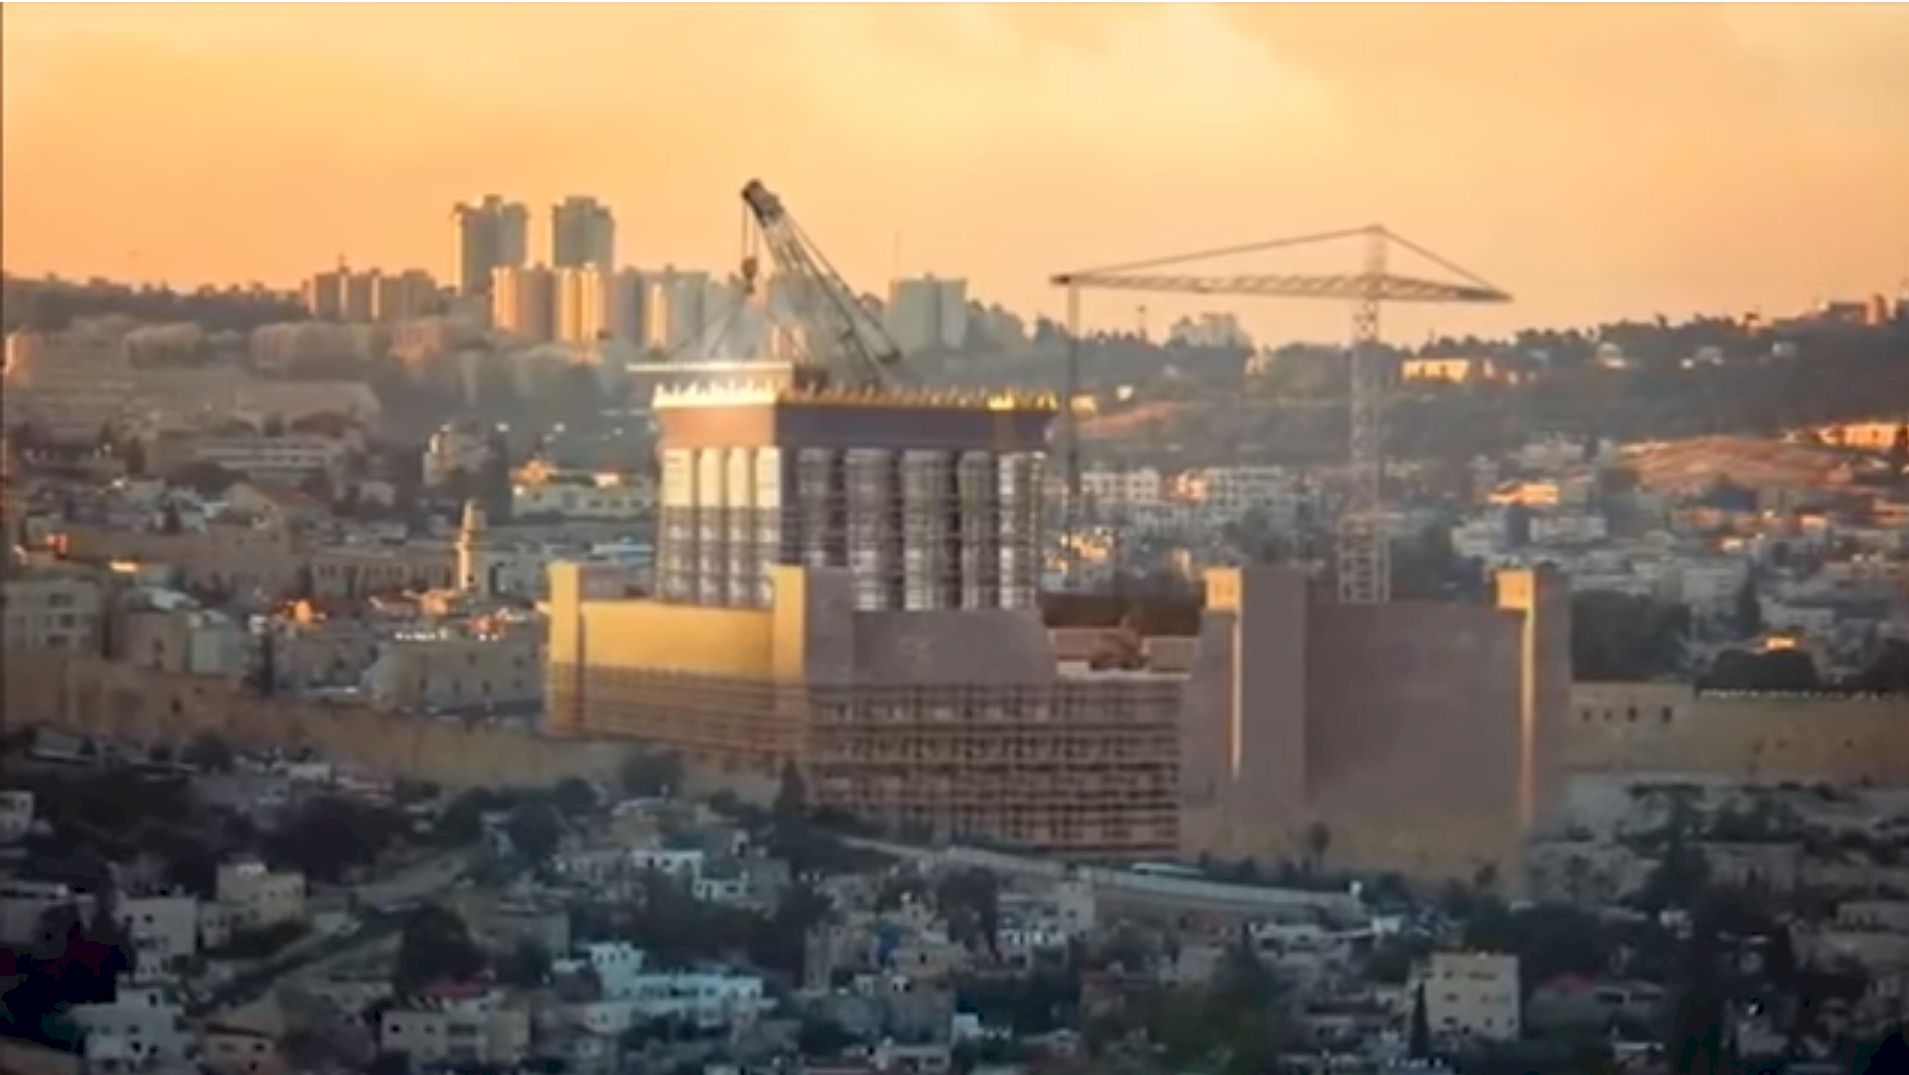 Planning and Building the Third Temple